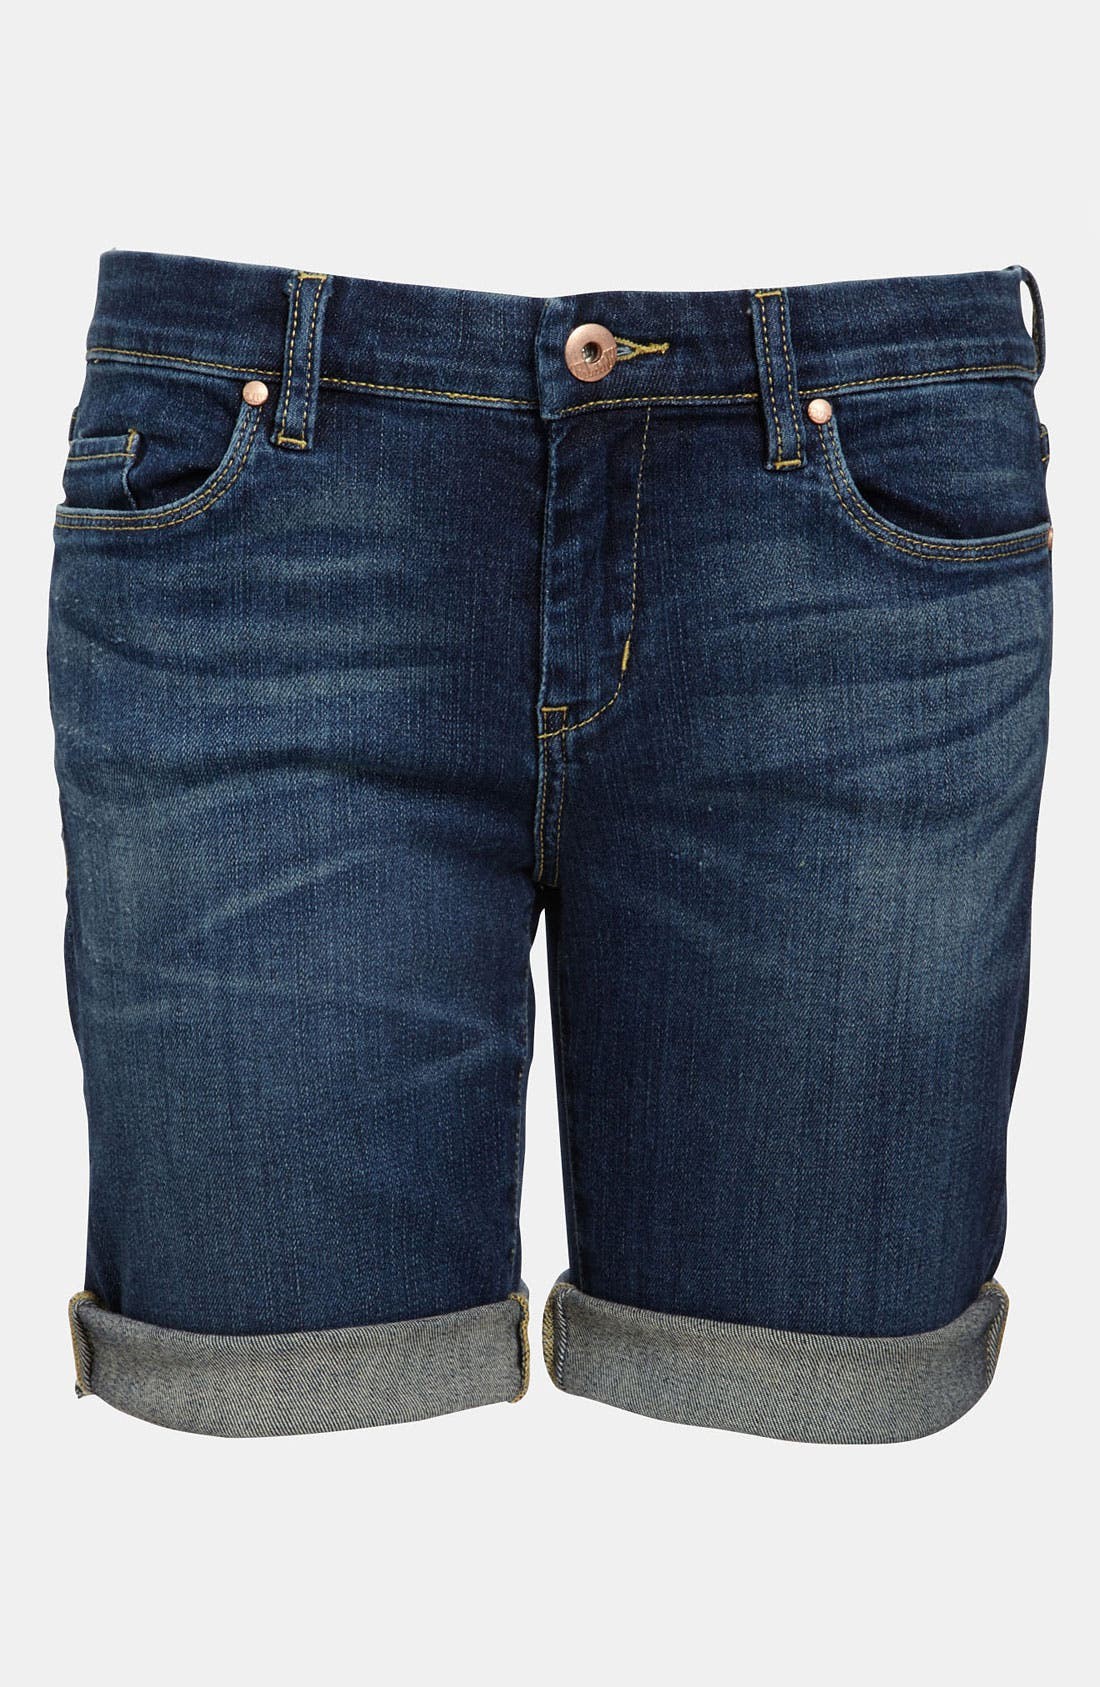 Main Image - BLANKNYC 'Roll Up' Jean Shorts